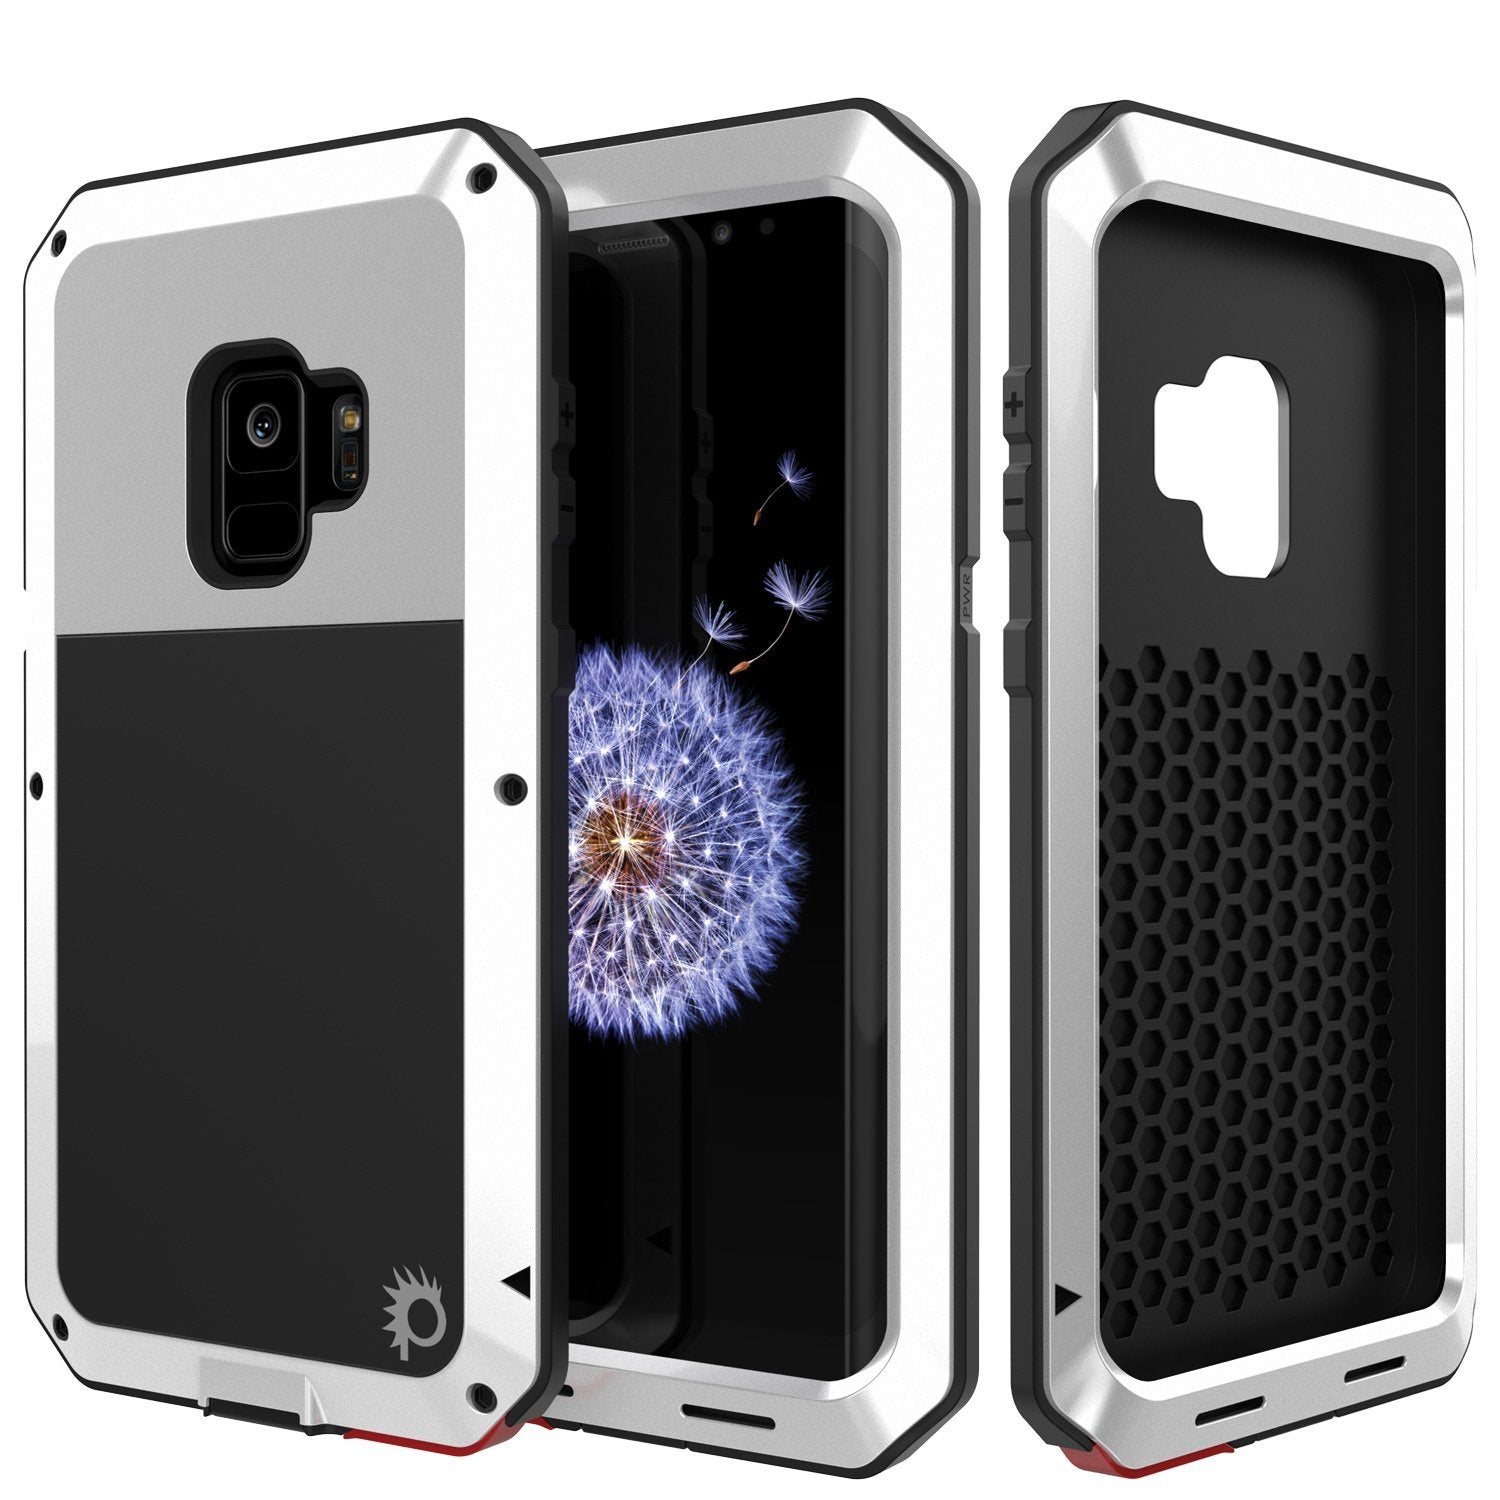 Galaxy S10e Metal Case, Heavy Duty Military Grade Rugged Armor Cover [White]